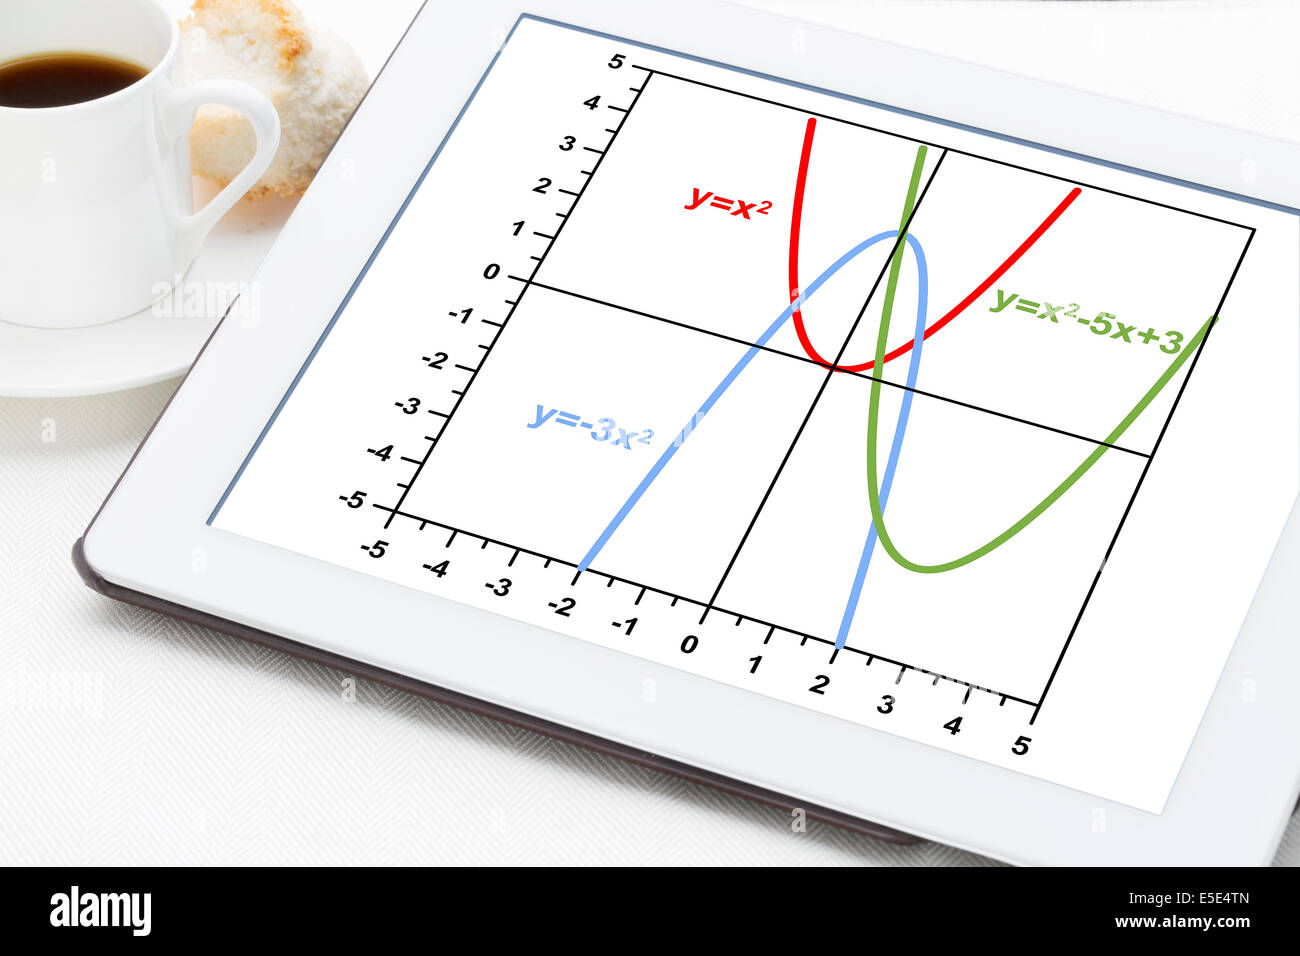 Graph Of Quadratic Functions Parabola On A Digital